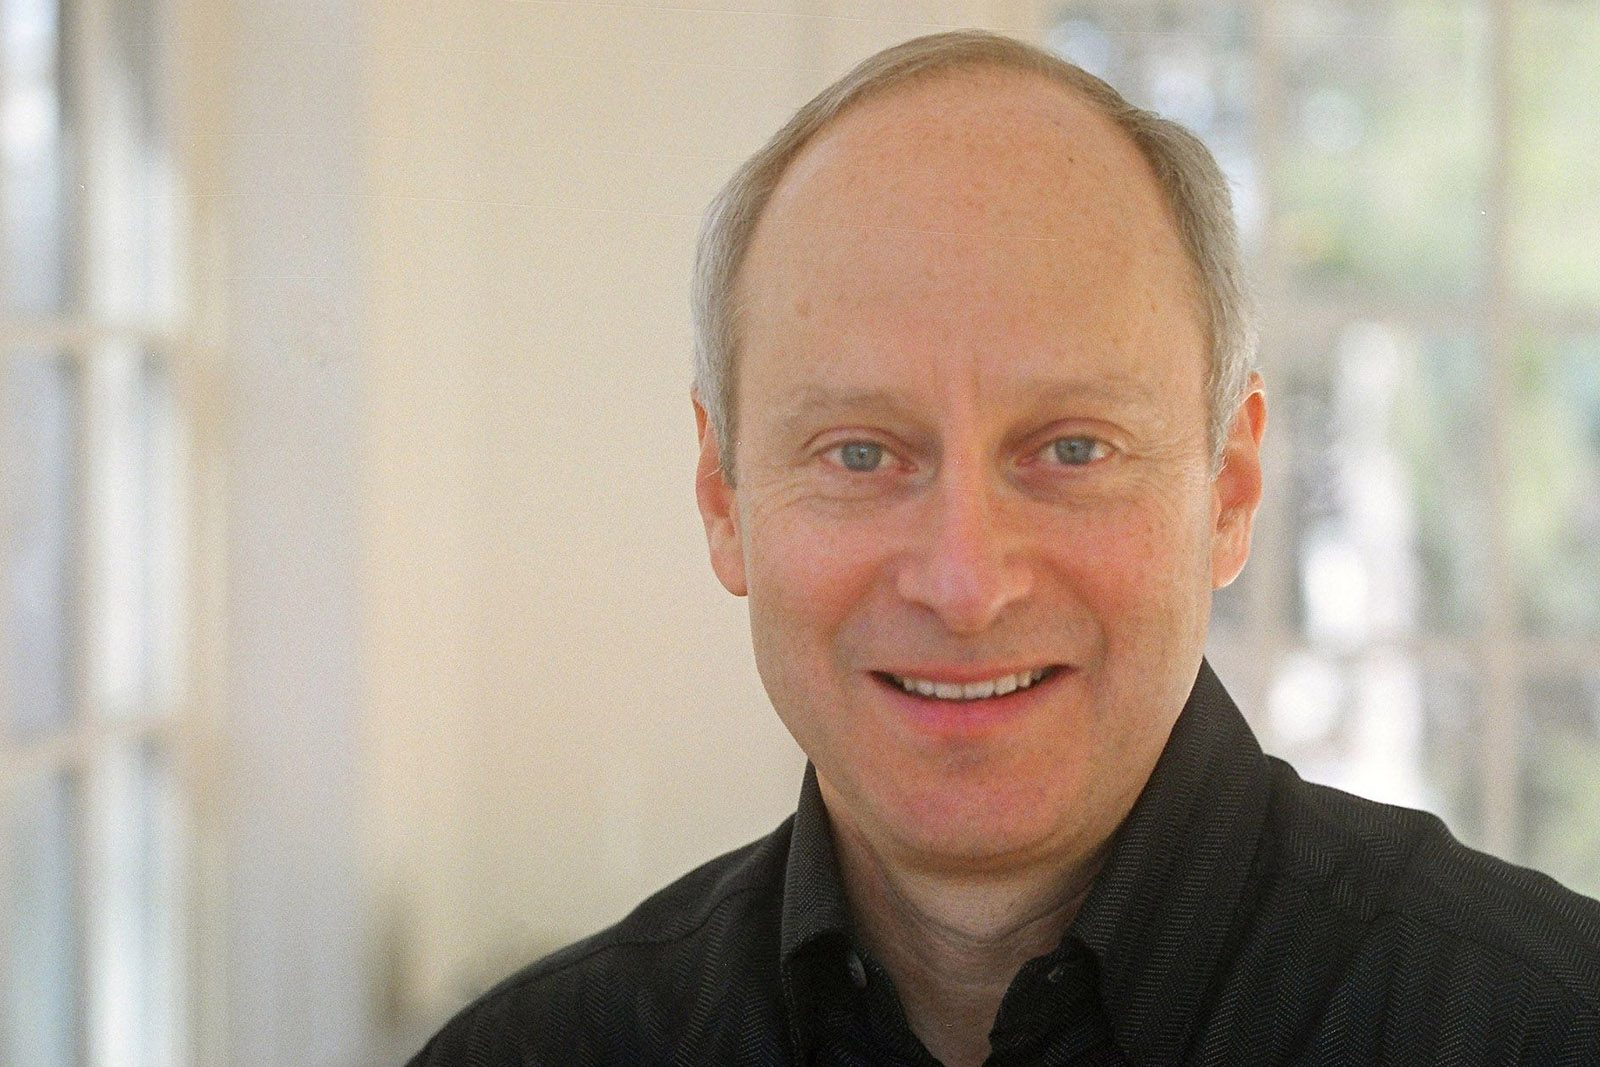 A portrait of Michael Sandel wearing a black shirt, with two windows in the background.